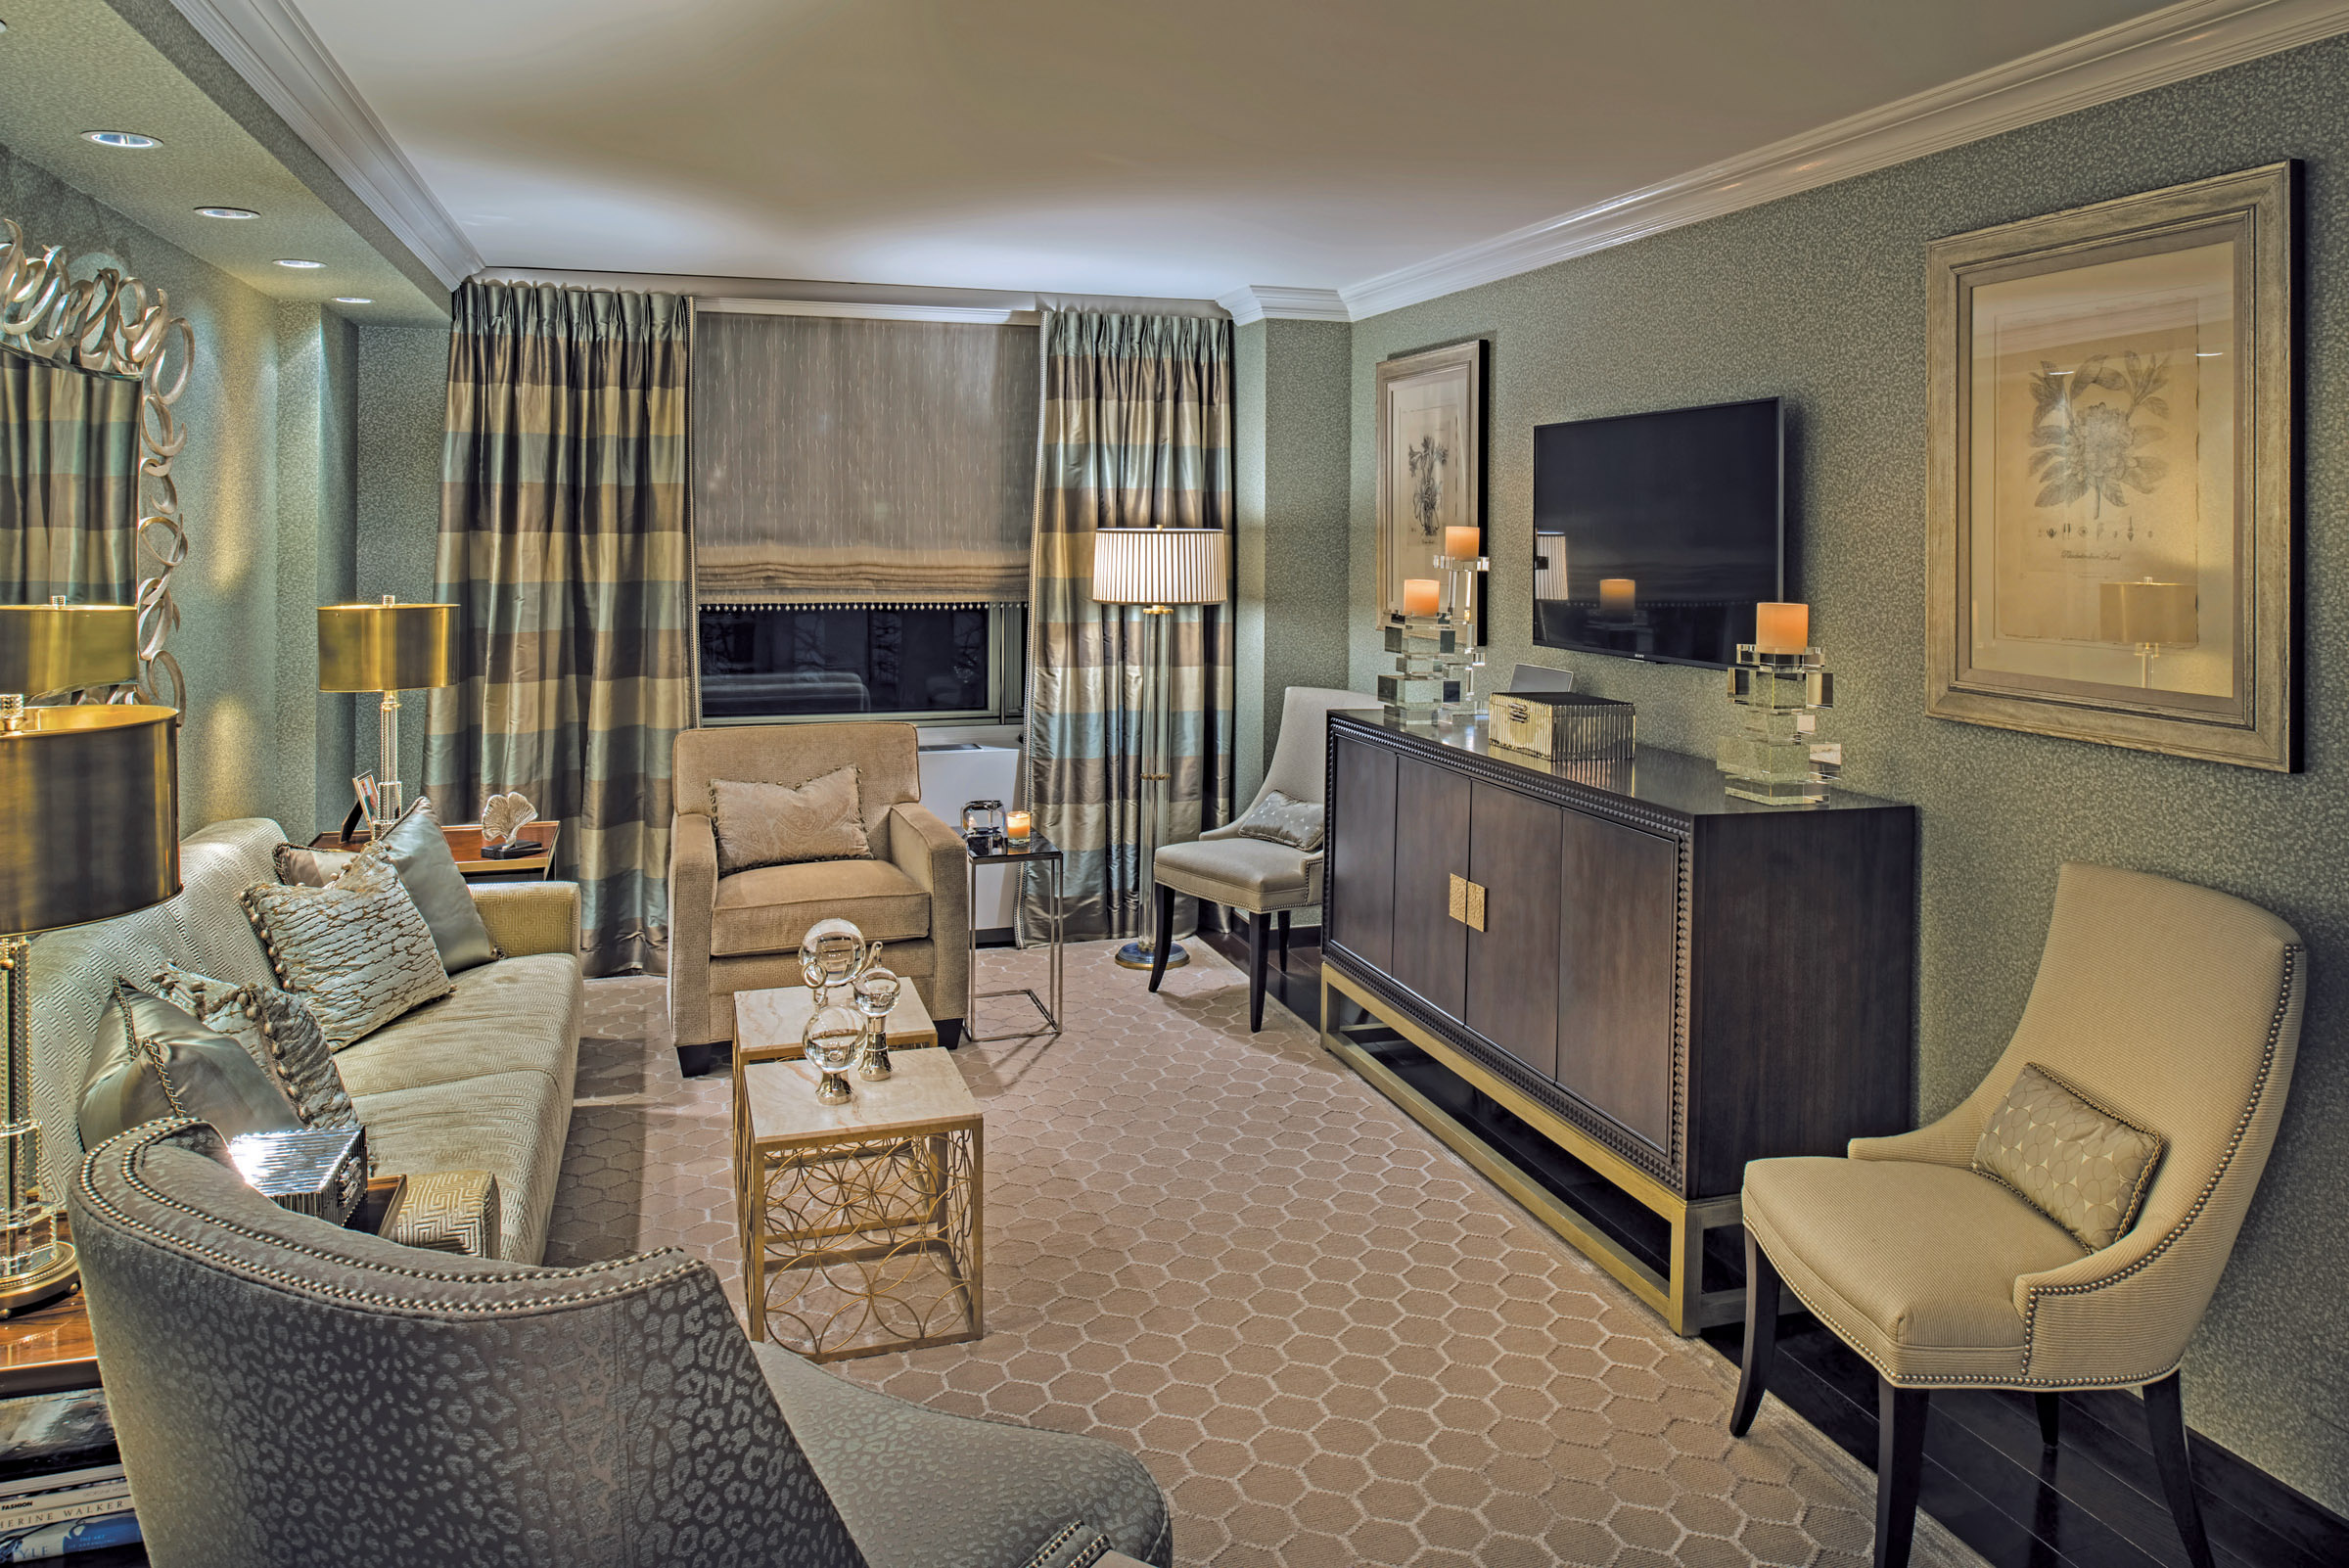 Kravet fabrics in the living room enhance upholstery by Louis J. Solomon. Lucite lamps project soft, romantic lighting.